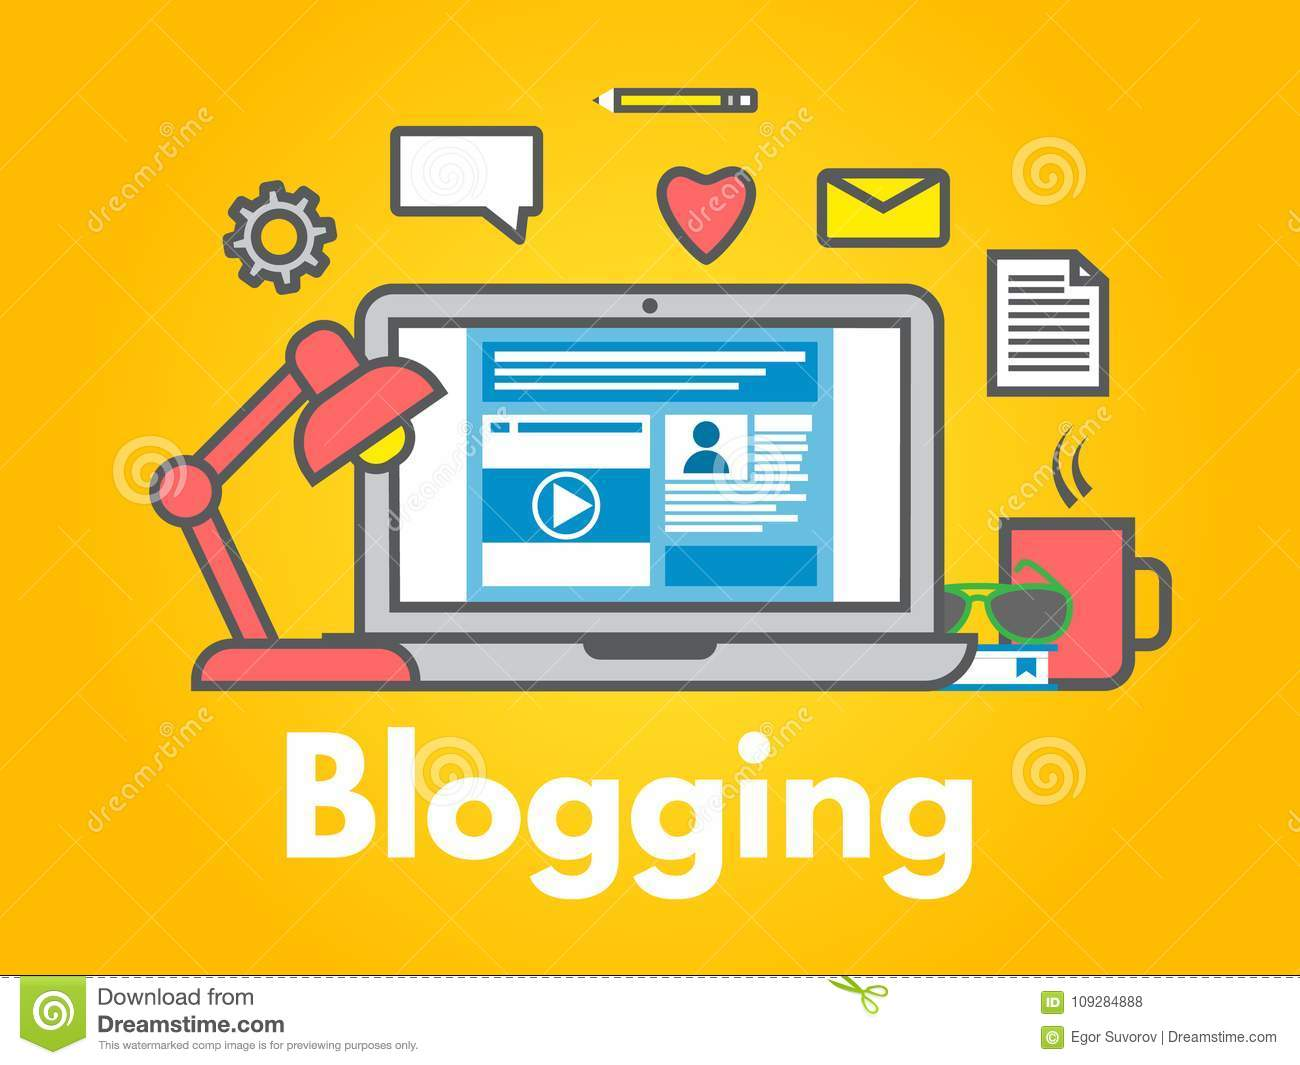 Blogging concept on yellow background. Laptop with icons. Social media sharing. Blog post flat line style. Business design. Trendy